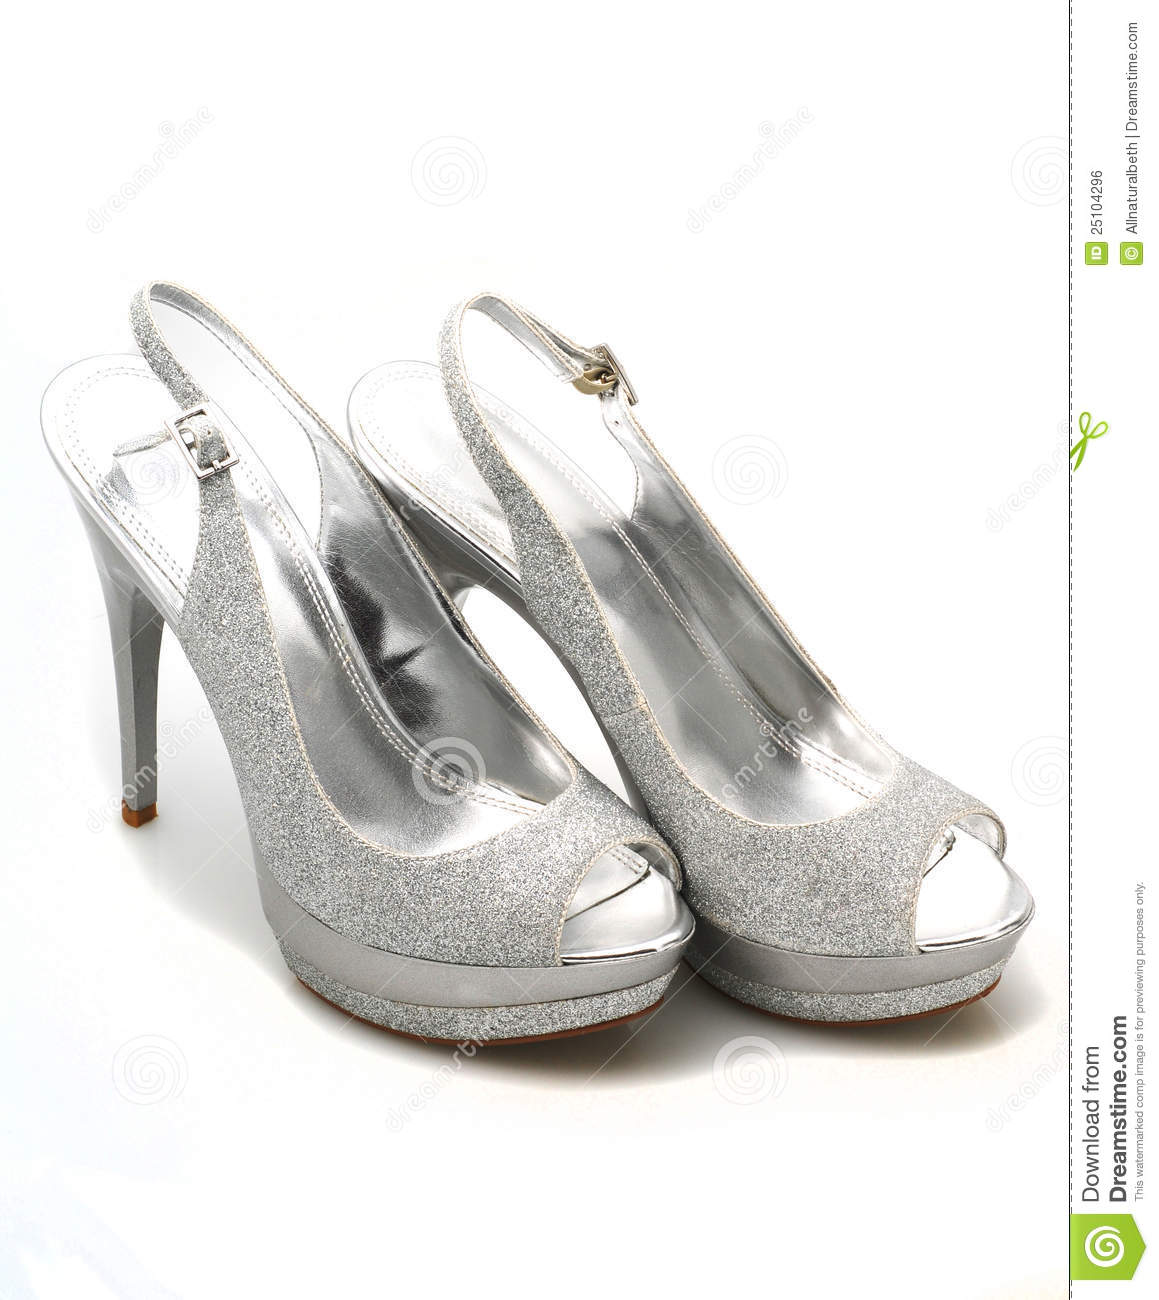 More similar stock images of ` Silver Glitter shoes